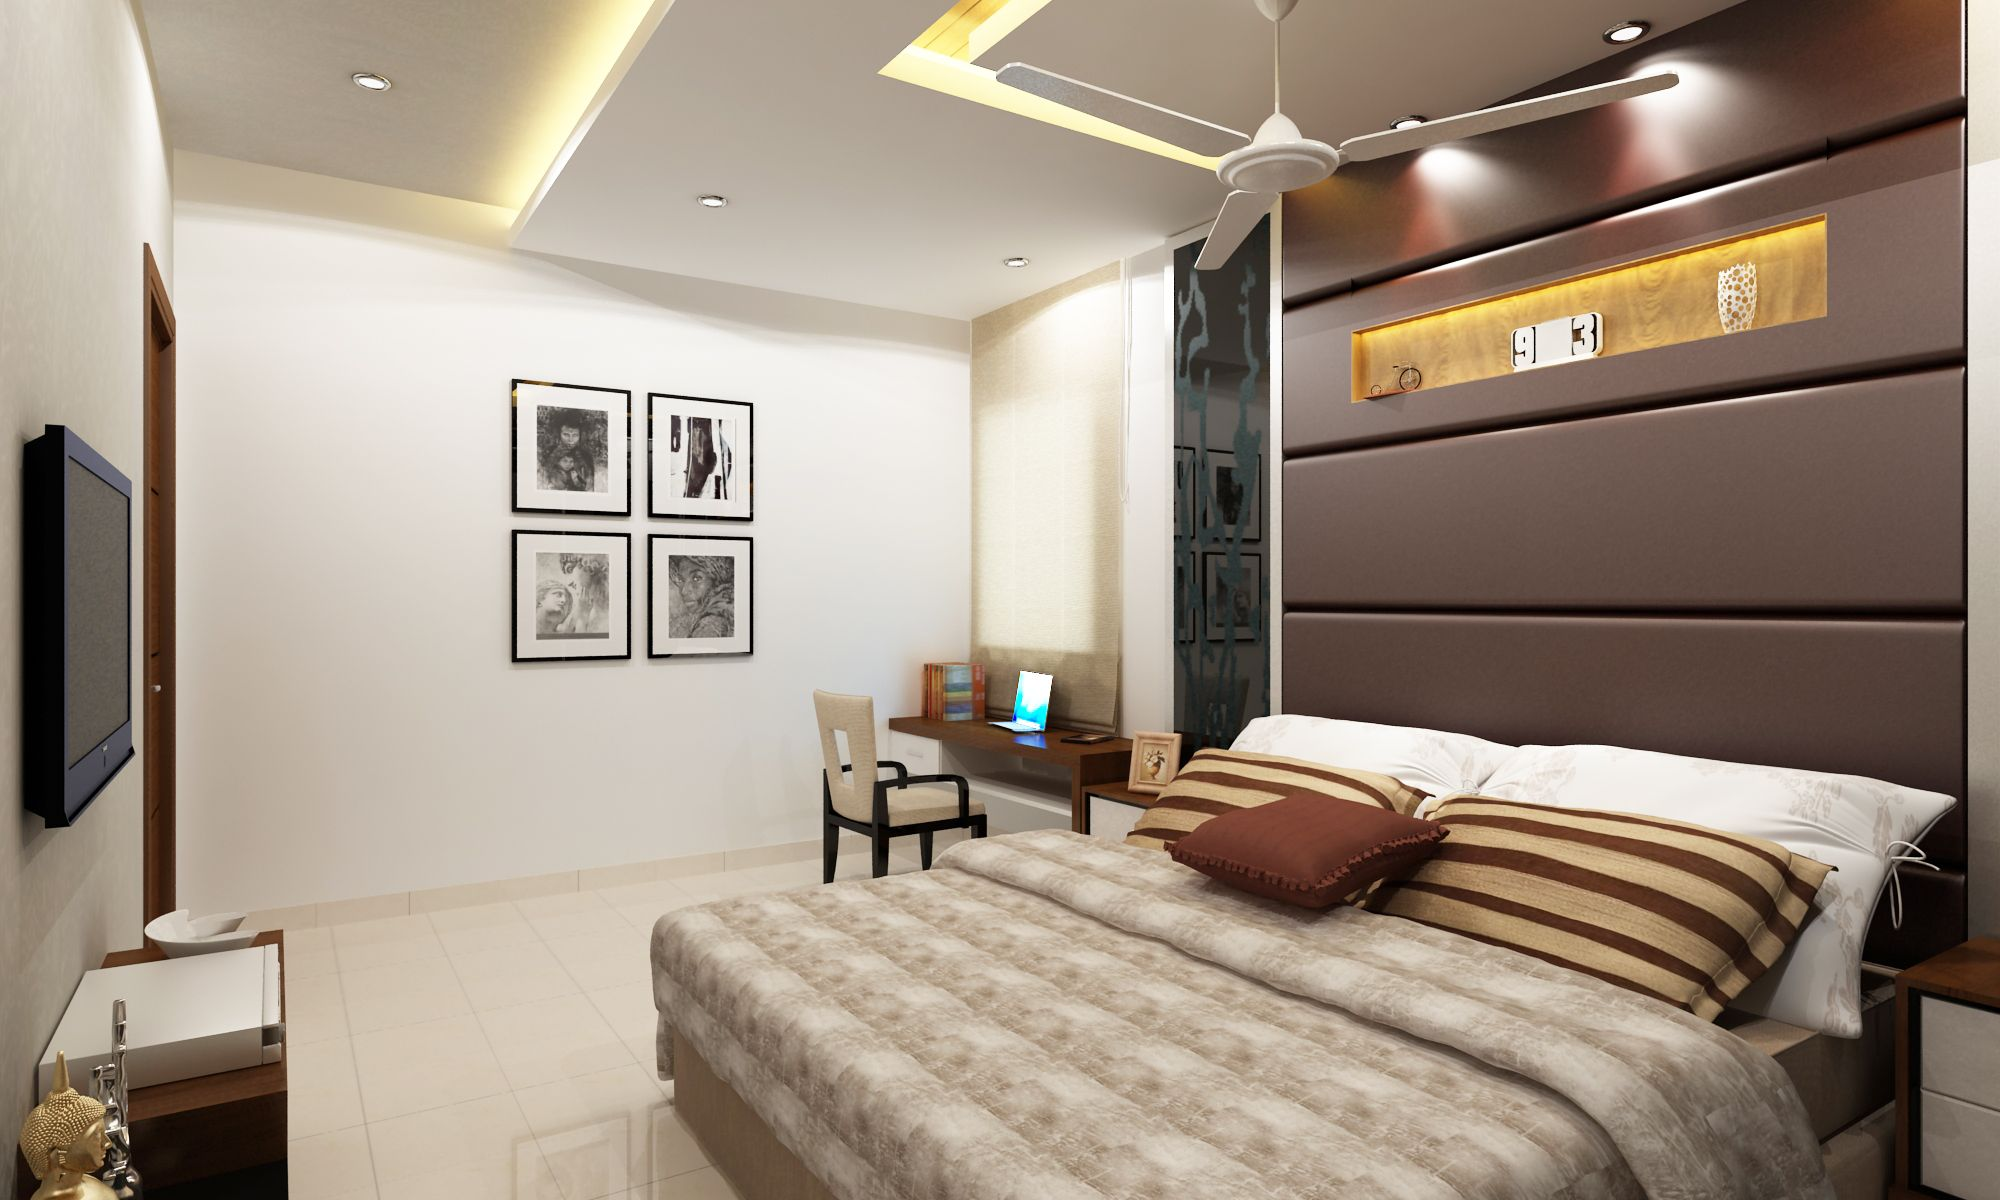 #BedRoomDesign Nice BedRoom Elevation Design If You Need Any Related Services  Please Contact : +91-040-64544555, +917995113333  Email: info@wallsasia.com www.wallsasia.com